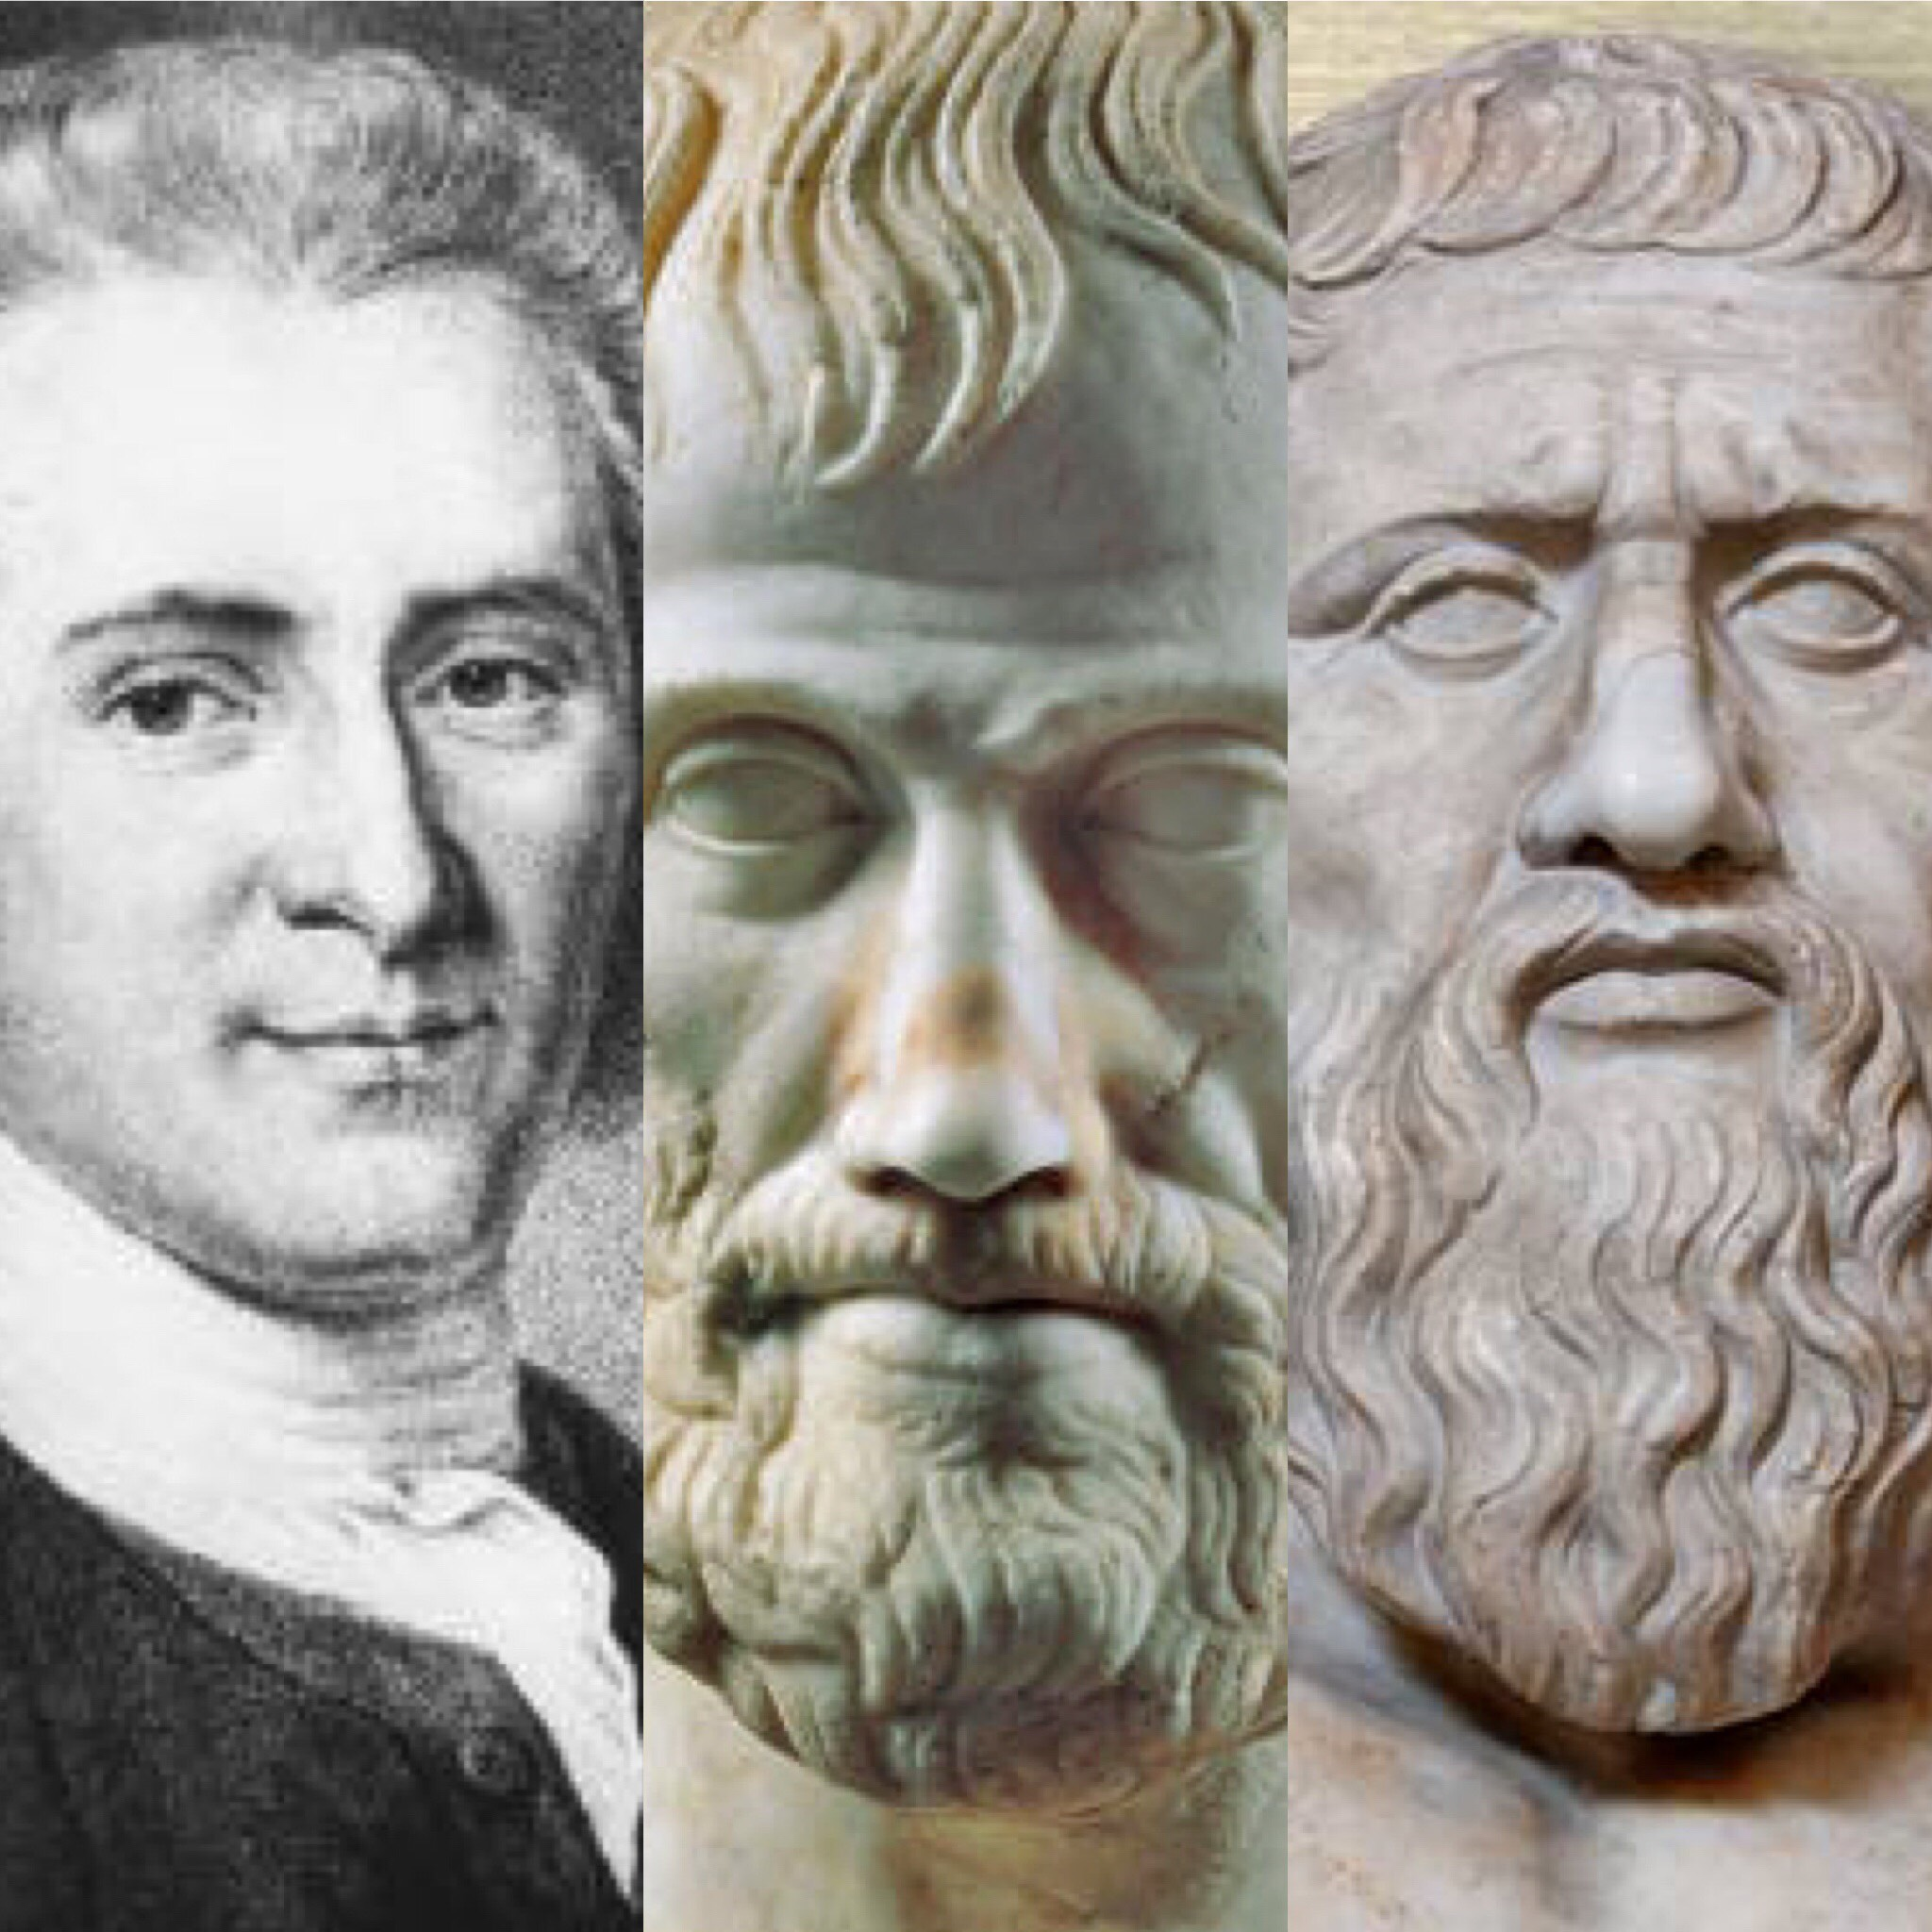 Political Culture and Character: What Plato, Aristotle, & Rousseau Meanfor Our Times - with Clare Pearson